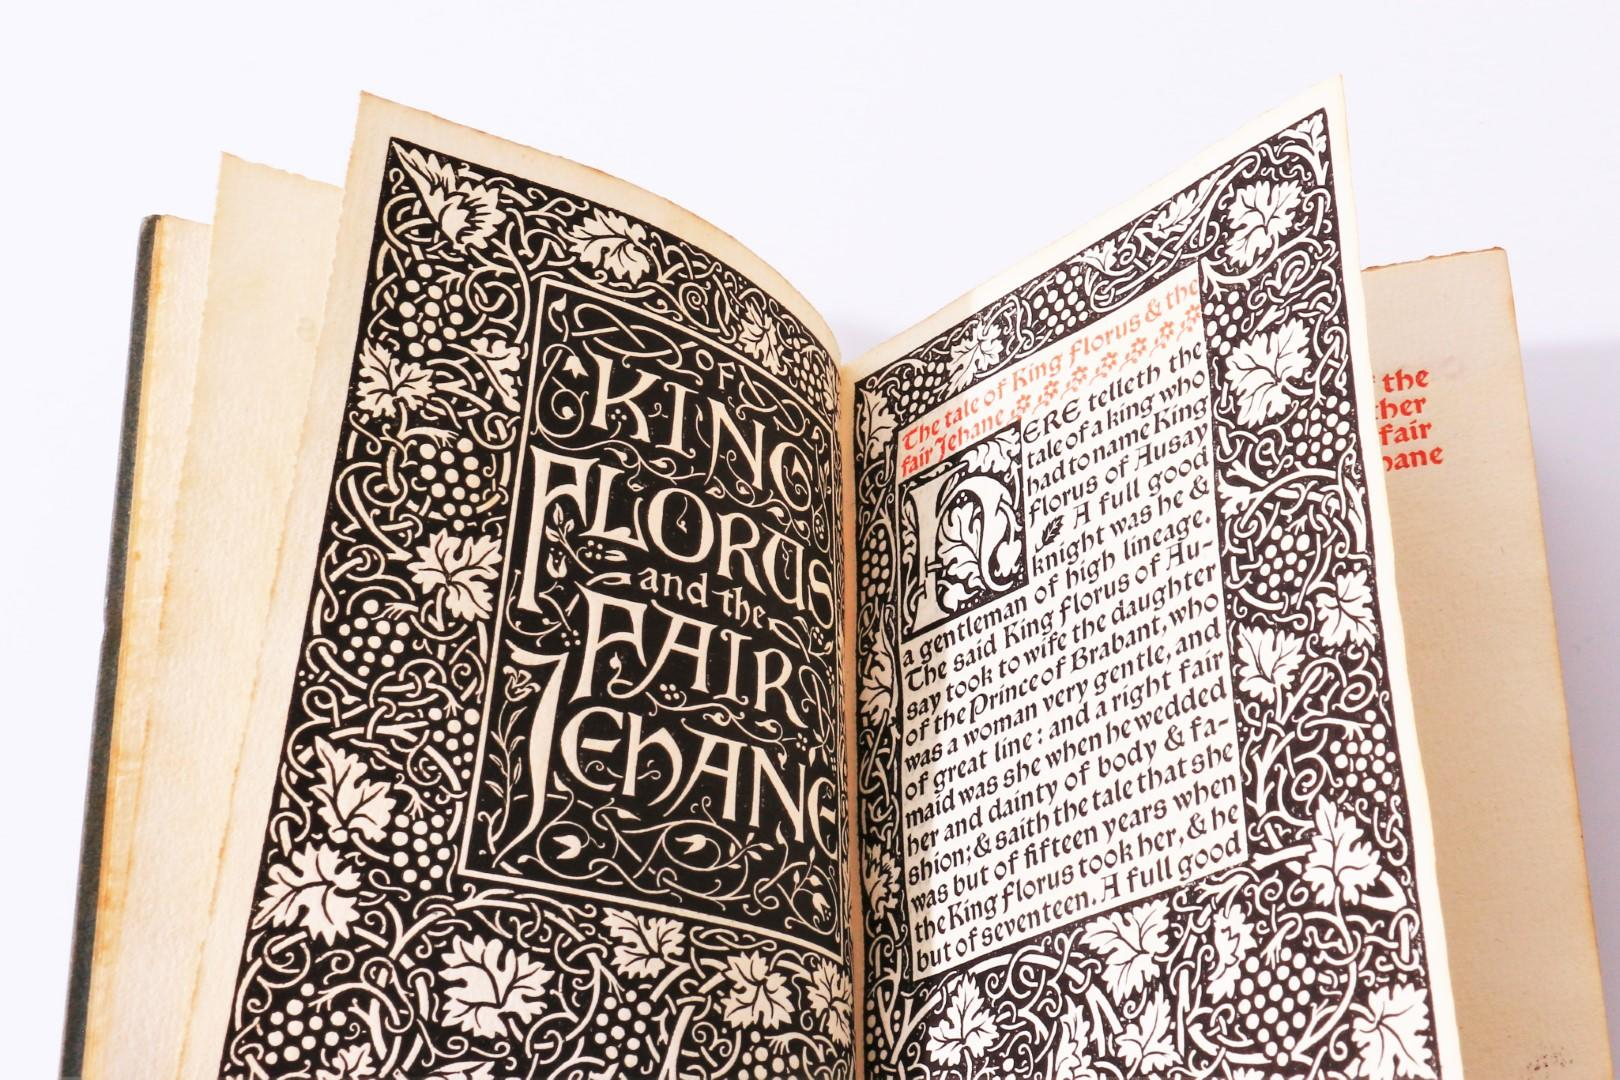 William Morris - The Tale of King Florus and the Fair Jahane - Kelmscott Press, 1893, Limited Edition.